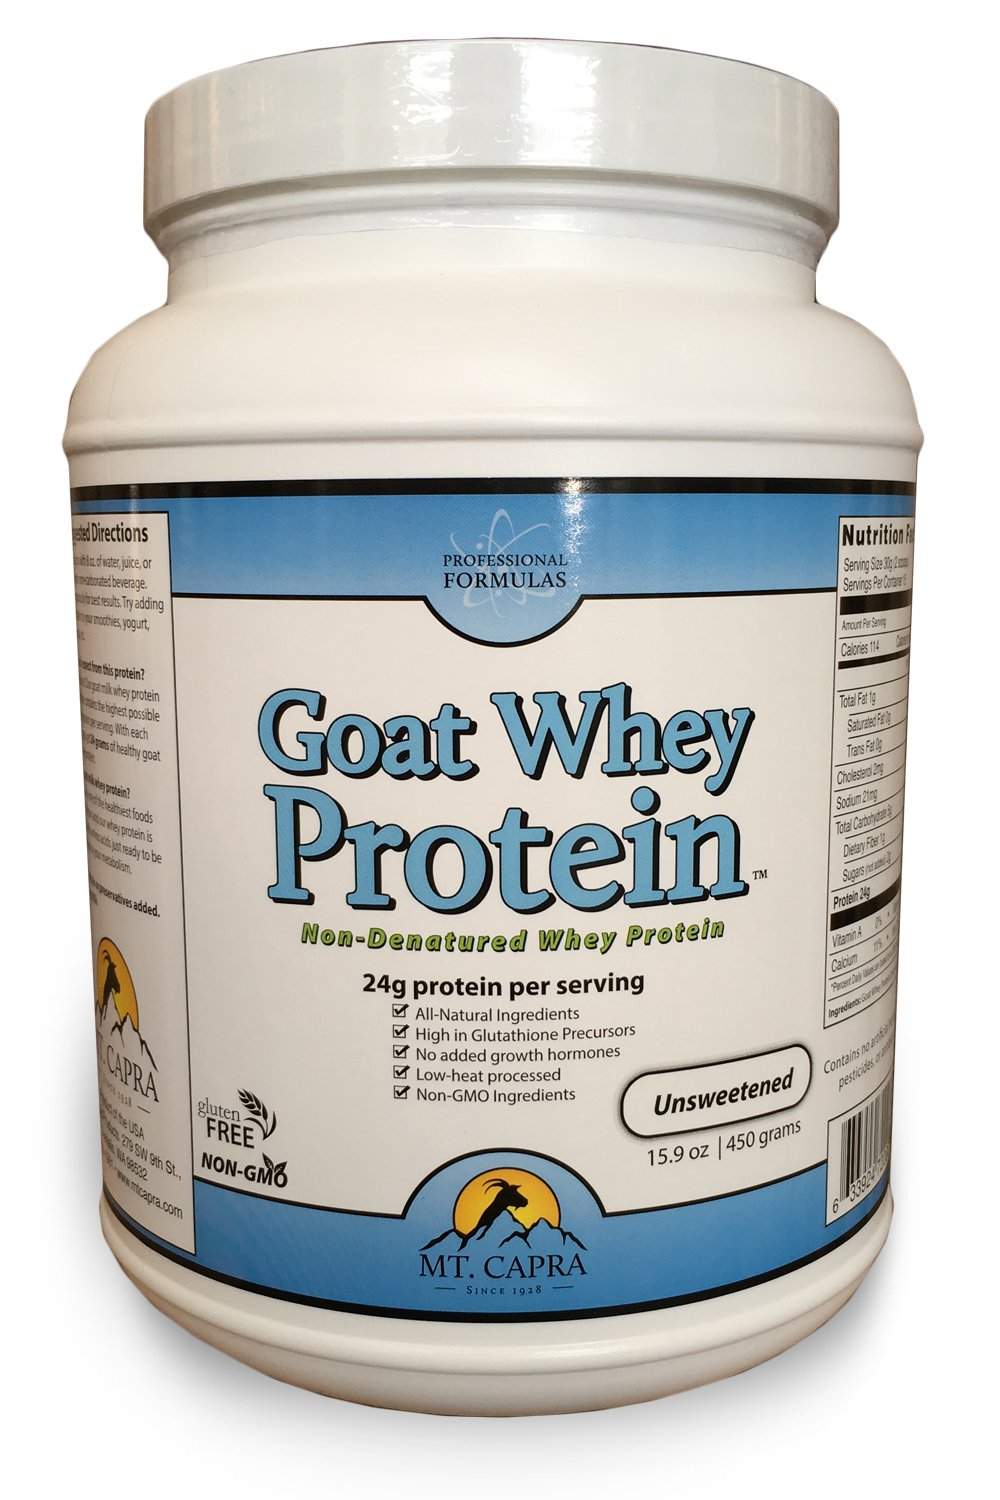 Goat Whey Protein by Mt. Capra | Grass-Fed Undenatured Whey Protein Concentrate Powder from Pastured Goats, All-Natural, NonGMO and High in Glutathione Precursors | Unsweetened